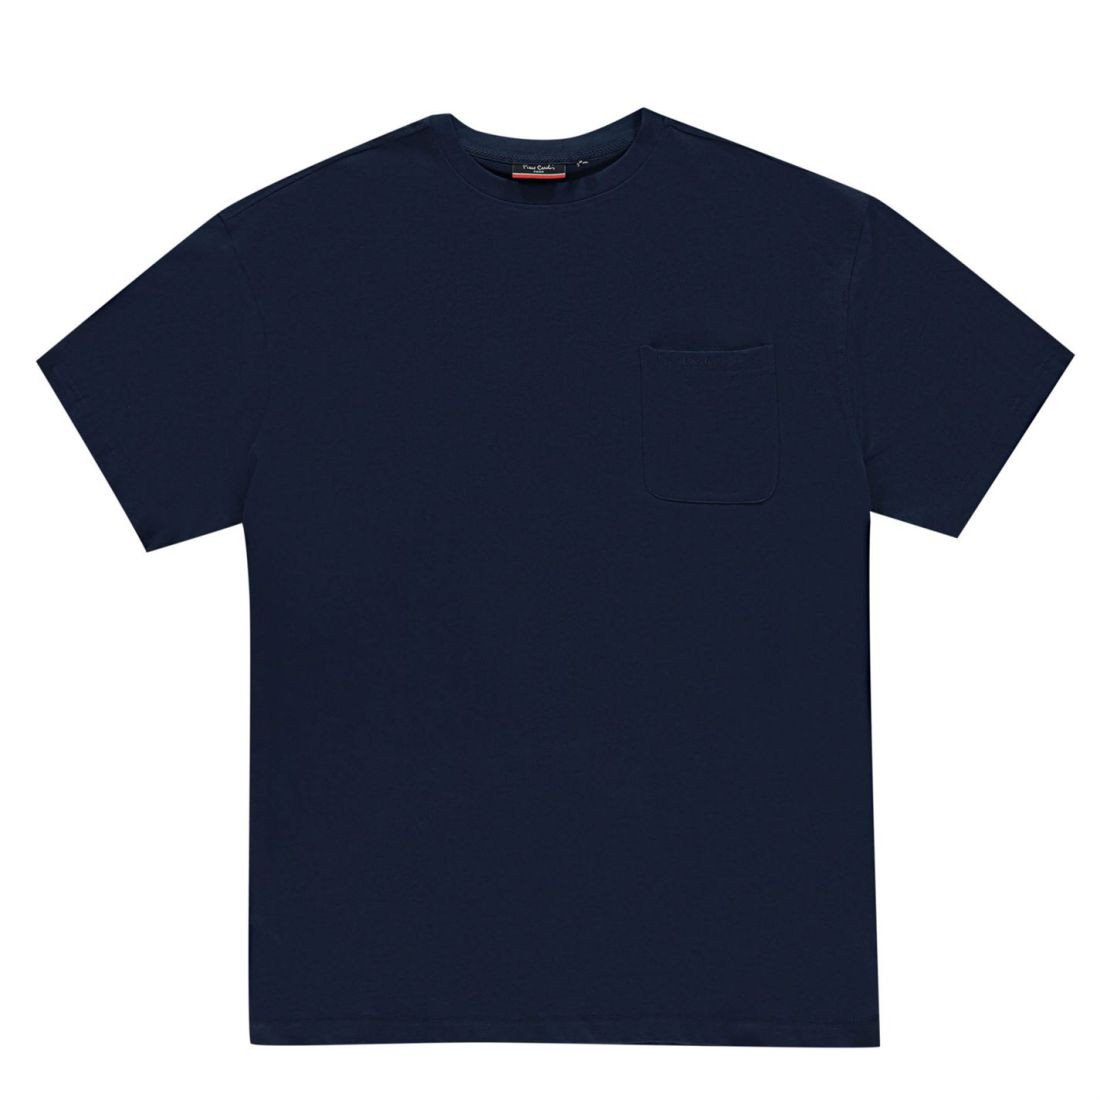 Pierre-Cardin-Mens-ExtraLarge-Single-Pocket-T-Shirt-Crew-Neck-Tee-Top-Short thumbnail 13